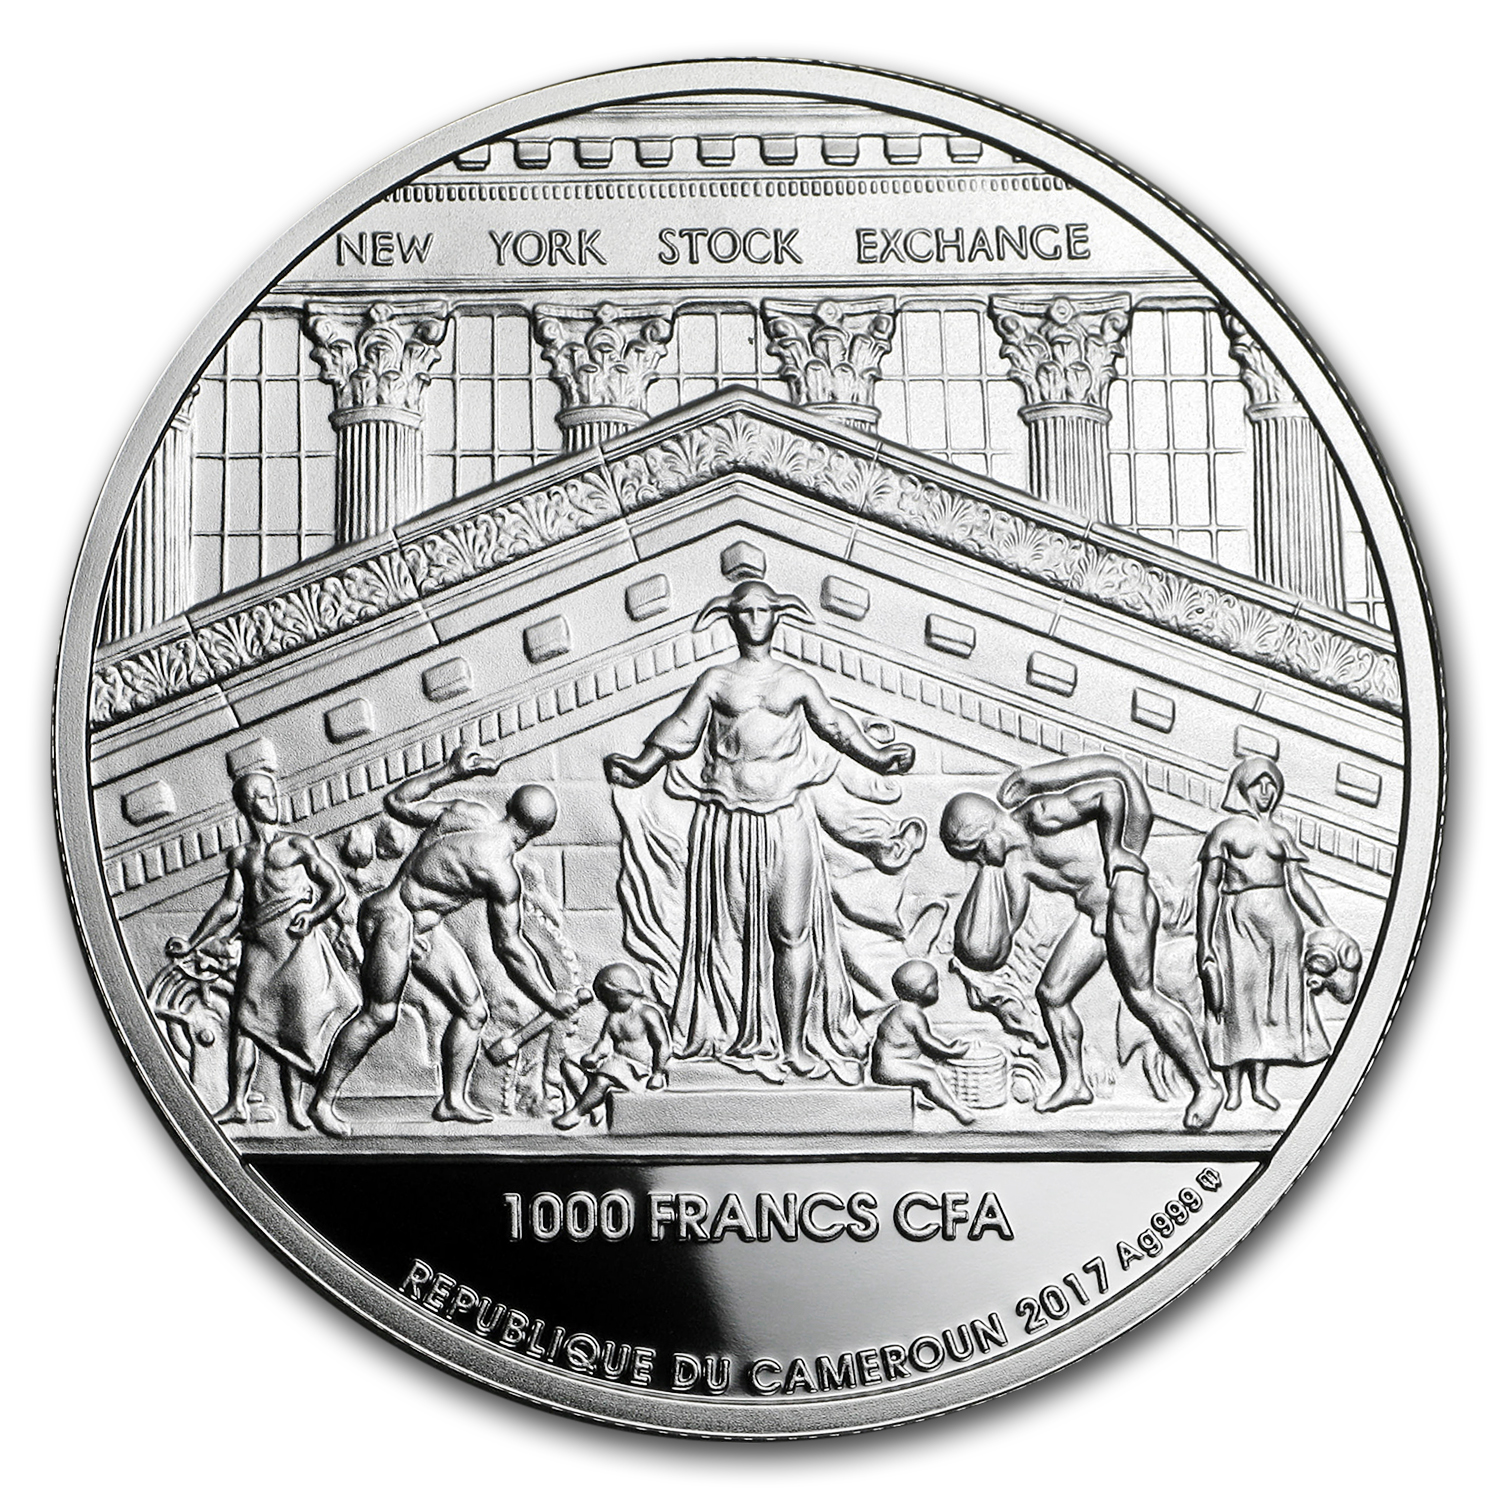 2017 Cameroon 1 oz Silver 200th Anniversary of NY Stock Exchange